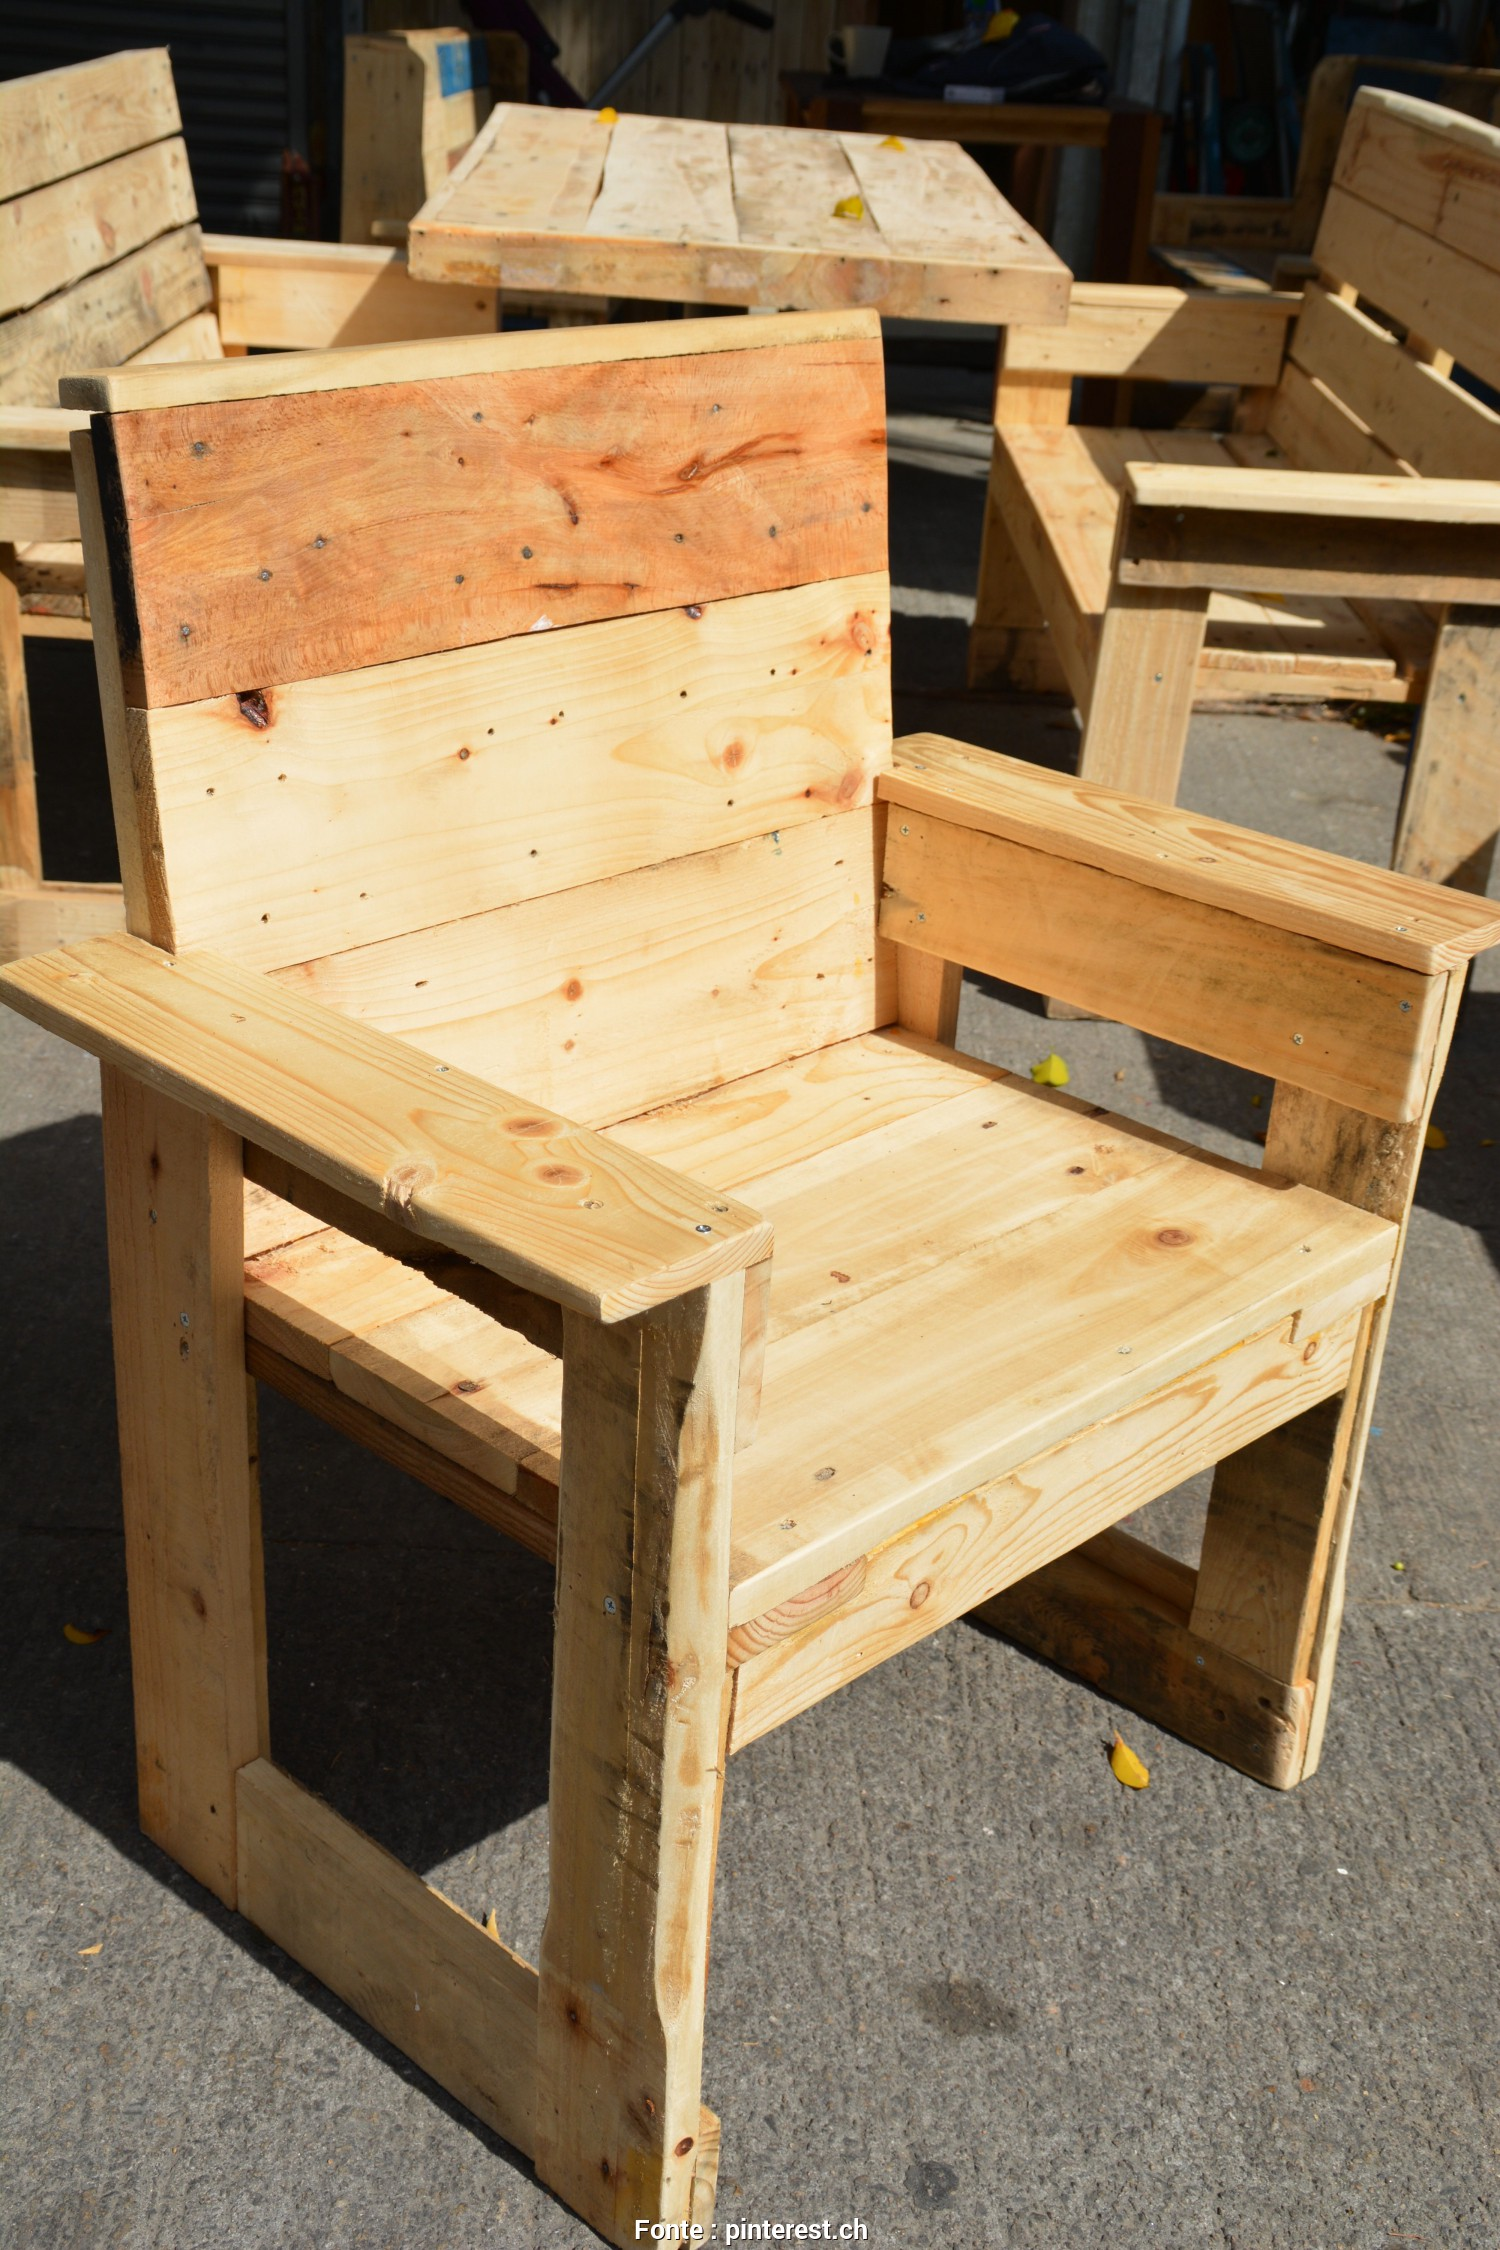 Poltrona De Pallet Pinterest, Eccezionale Pallet Chair, Wood Pallet Furniture, Dining Furniture, Garden Furniture,, Furniture